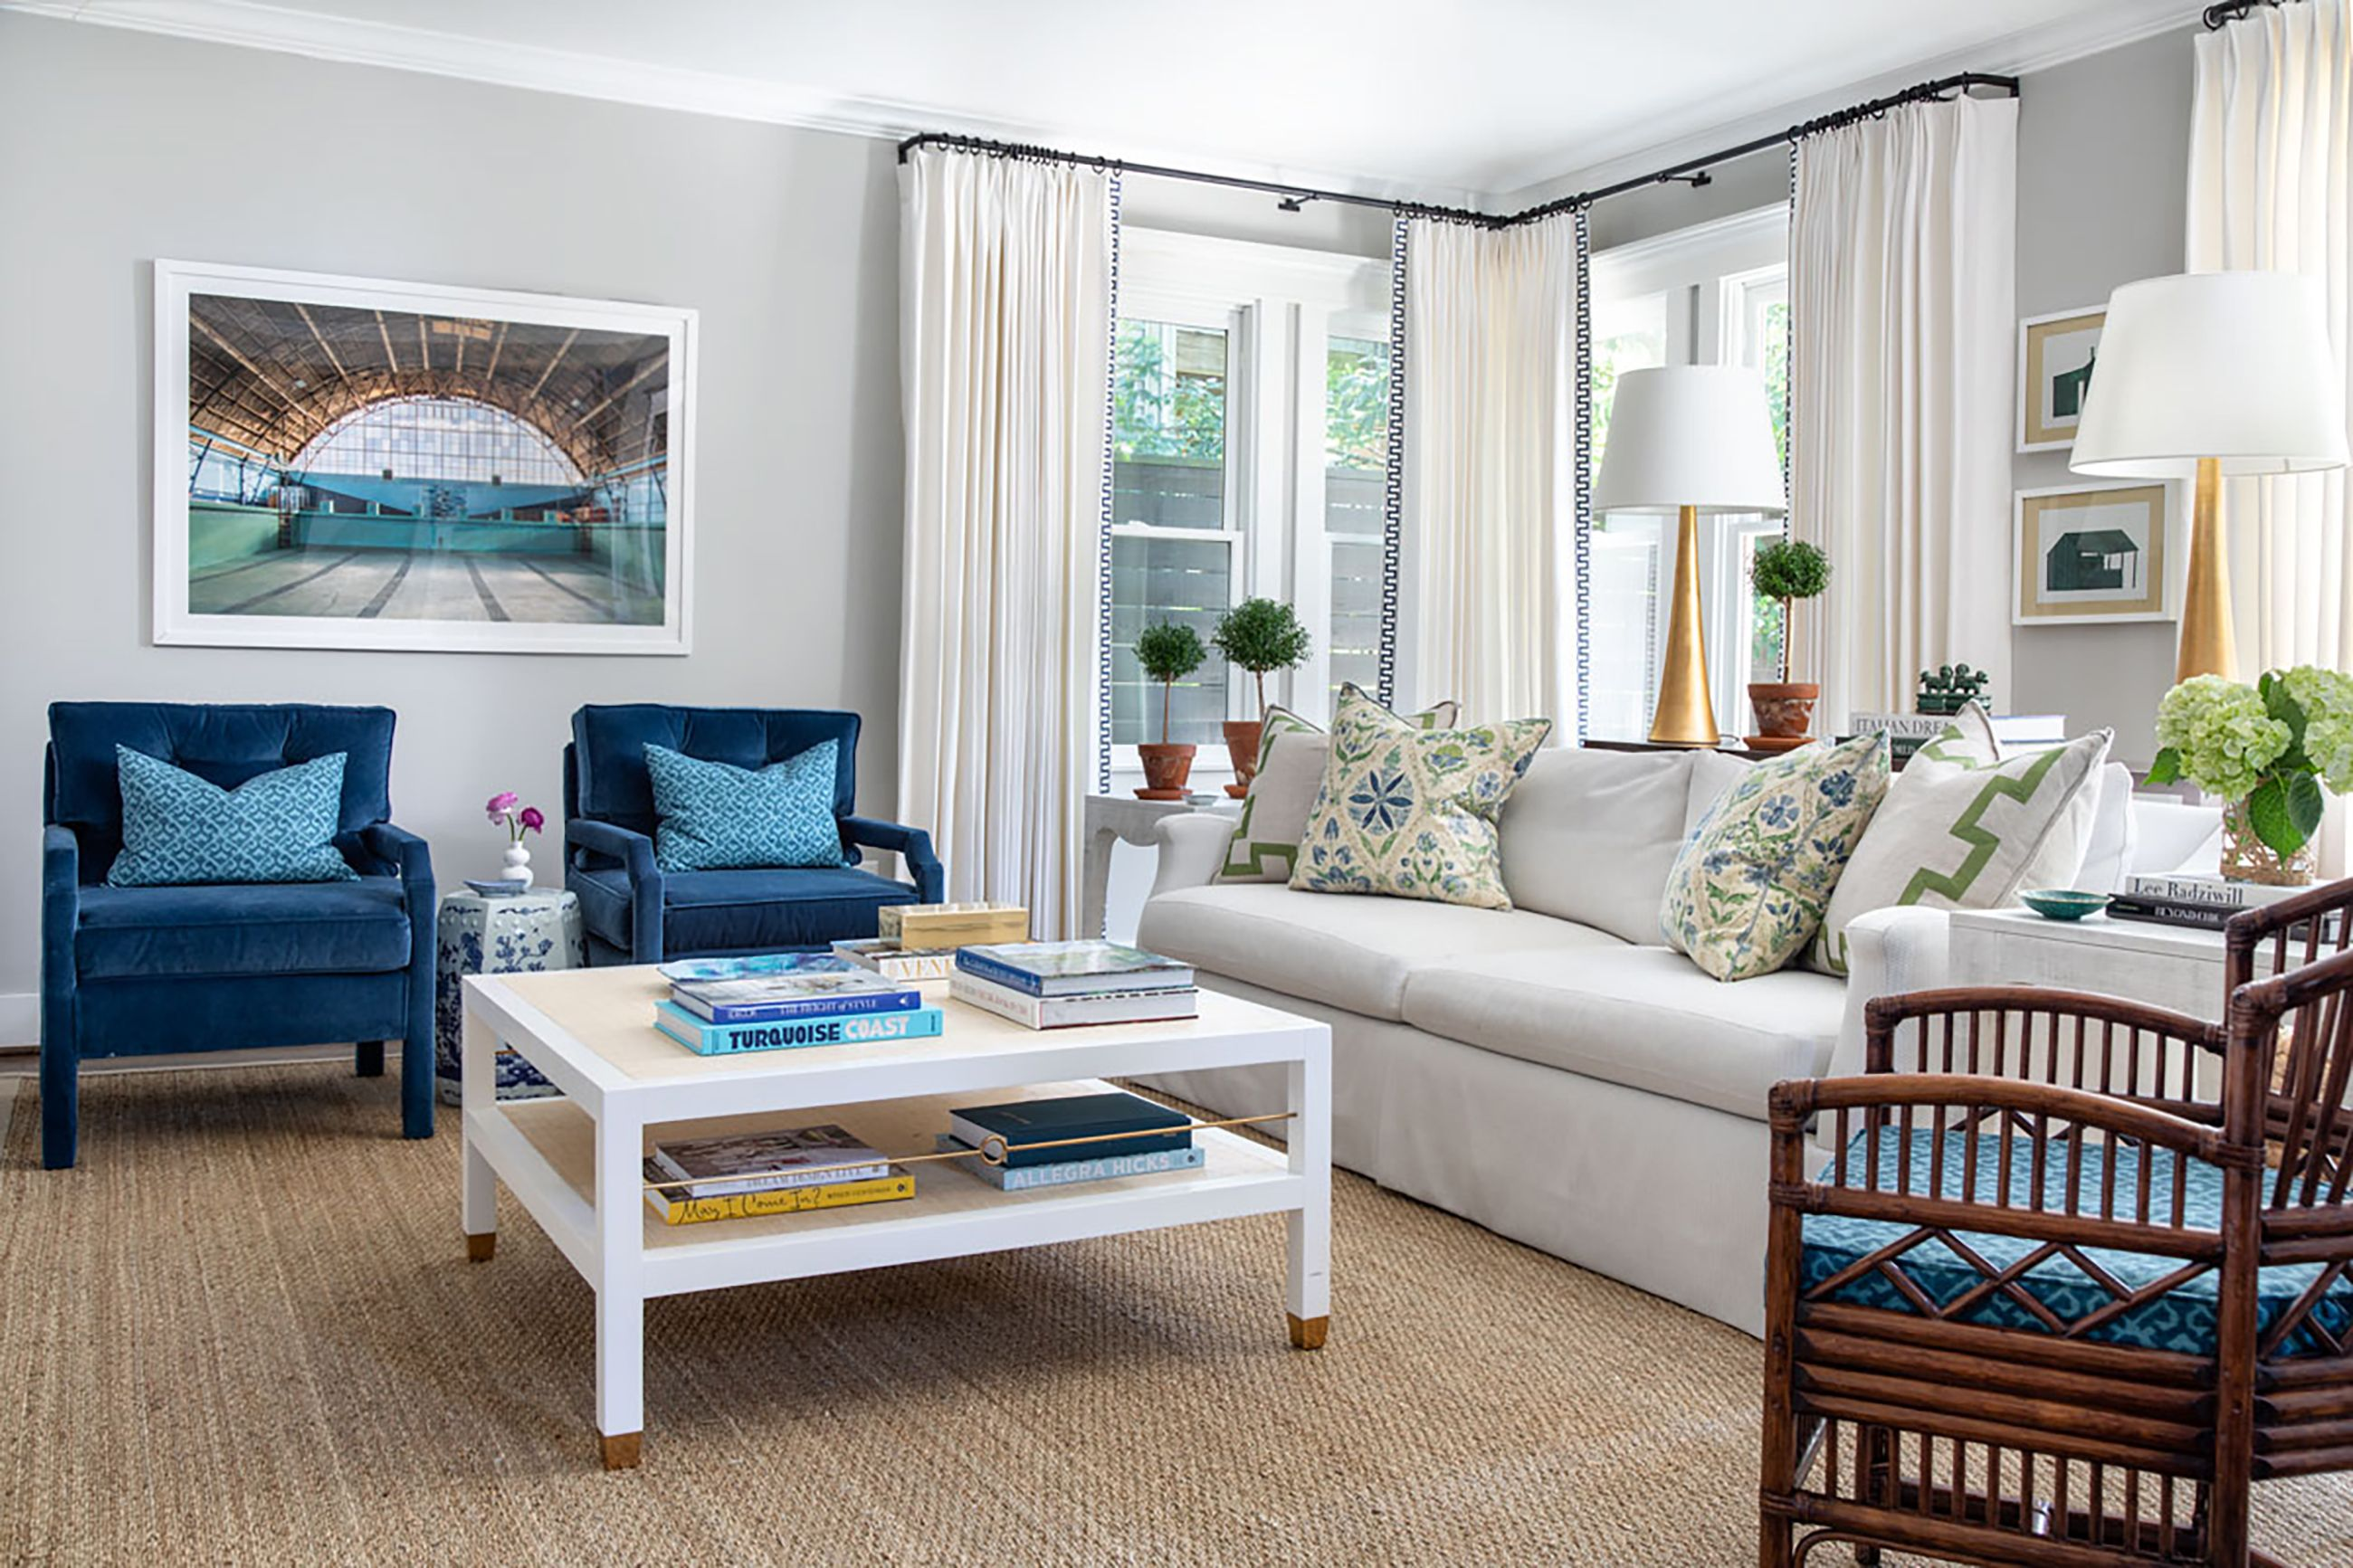 14 Best Summer Color Trends for 2020 - Paint Colors to Try in Your Home  This Summer